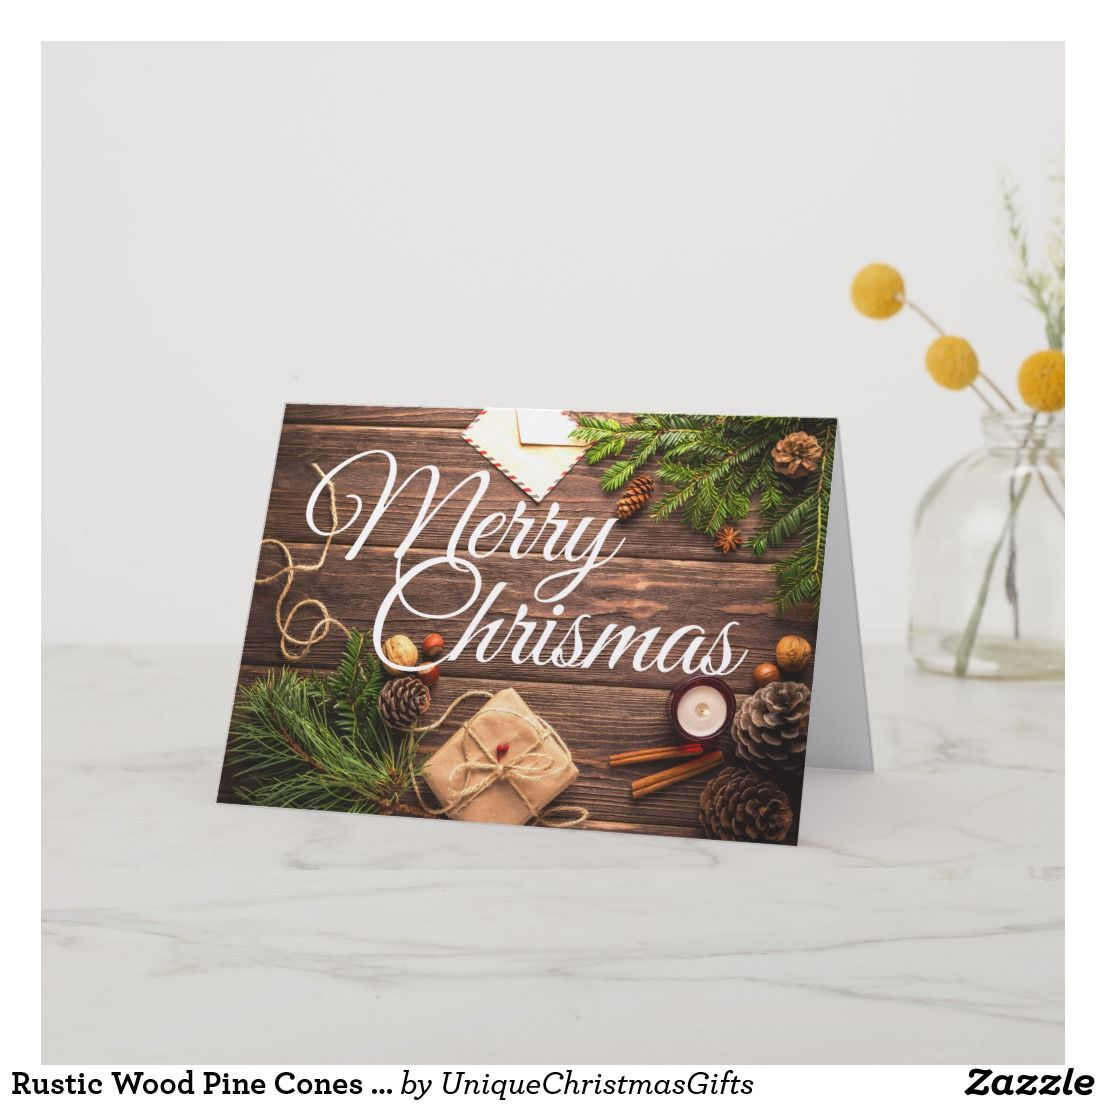 Rustic Wood Pine Cones Merry Christmas Card Folded Greeting Card